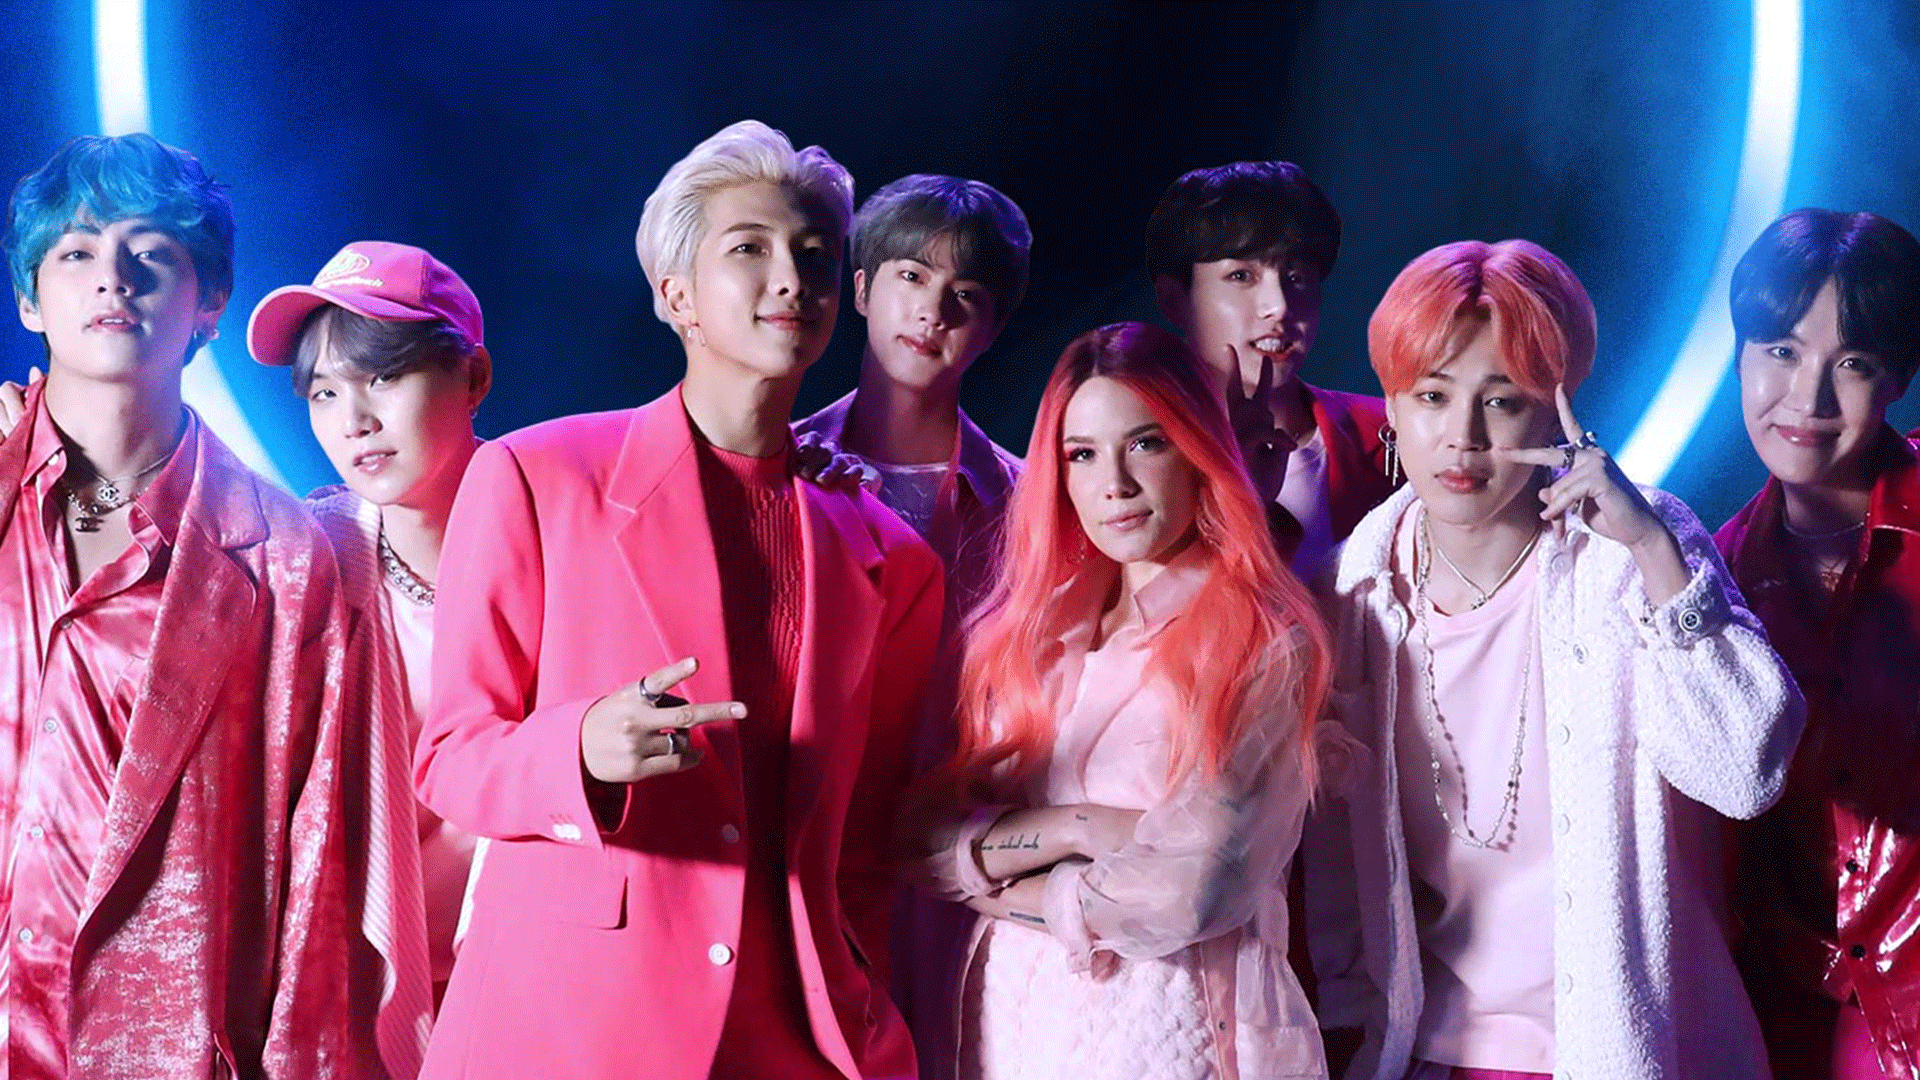 Boy With Luv Bts Wallpapers Wallpaper Cave